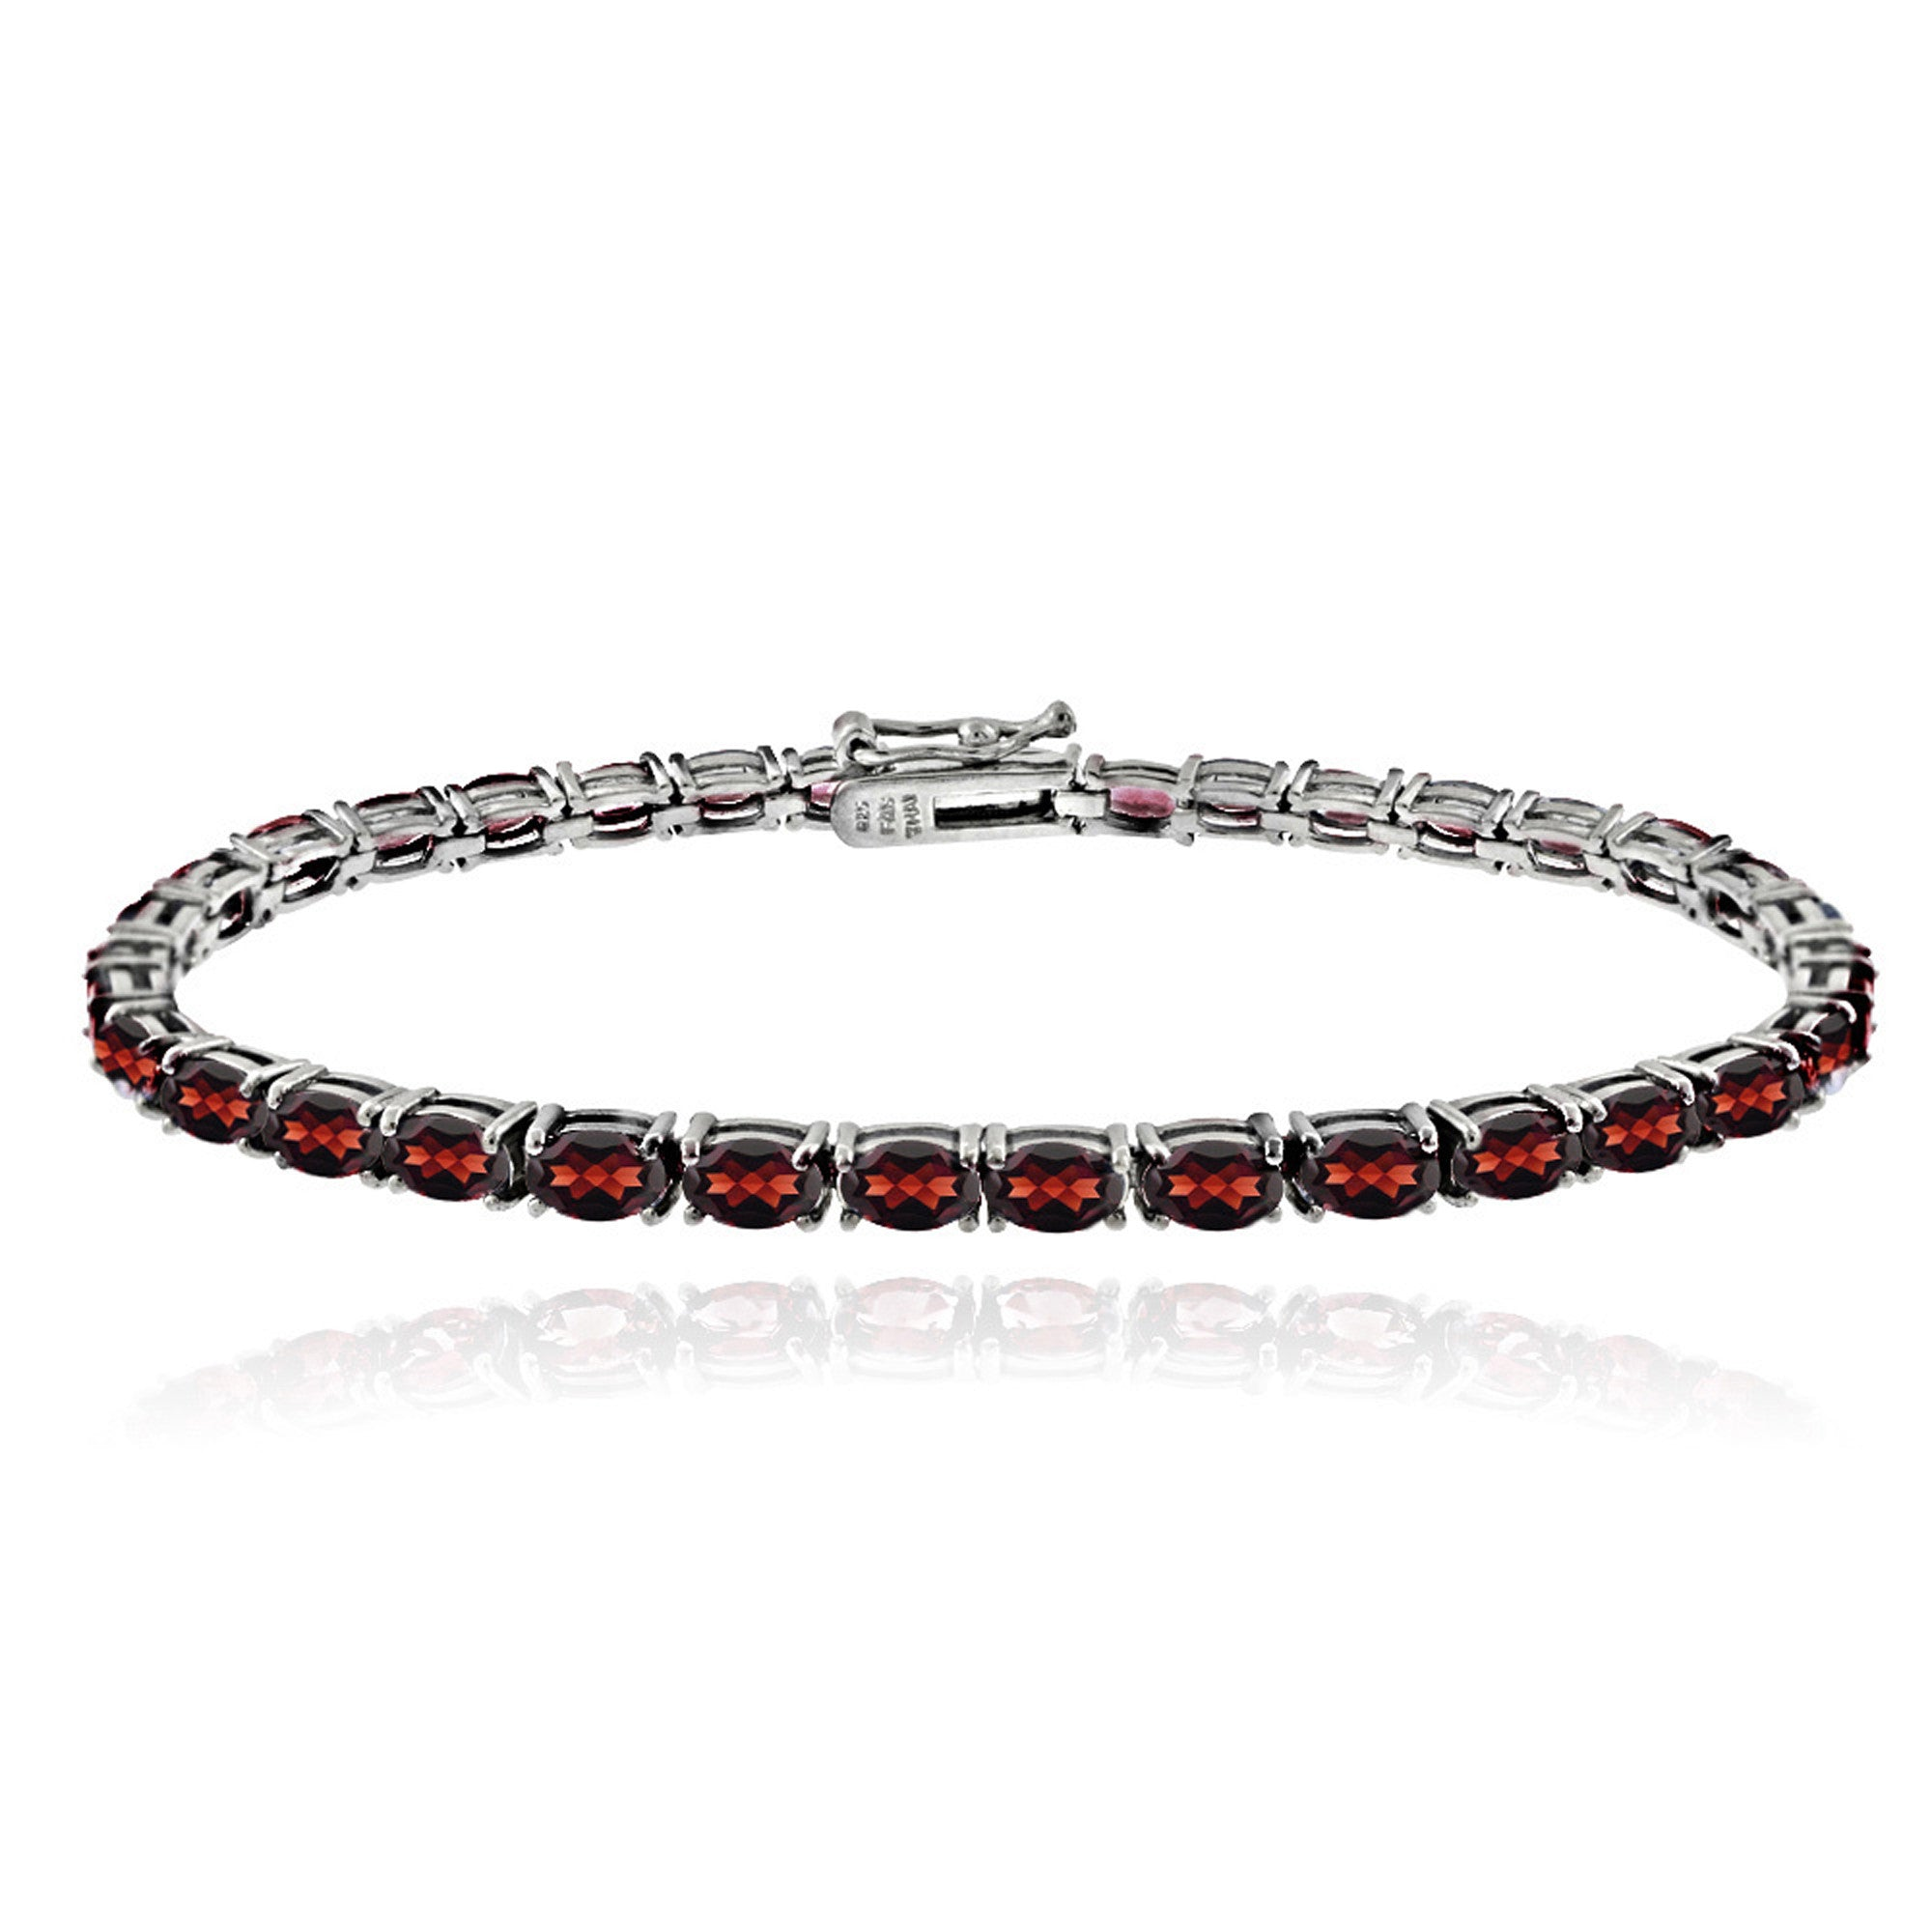 Birthstone Tennis Bracelet With CZ & Gem Accents in Sterling Silver - January Garnet